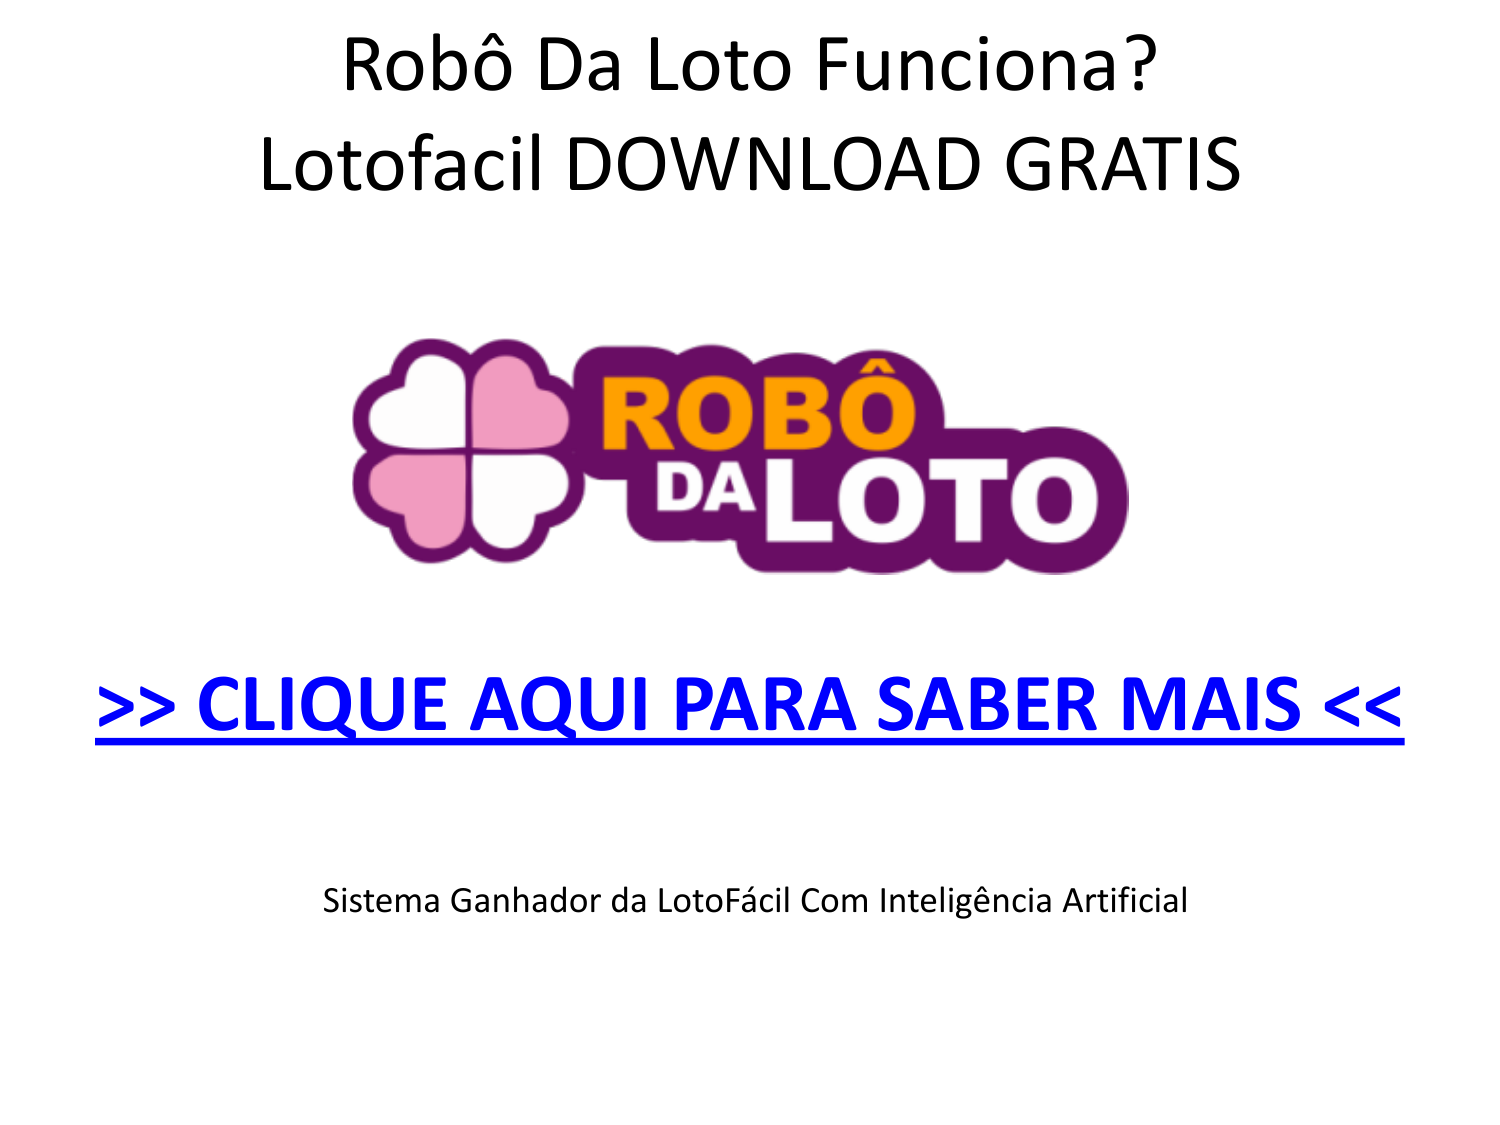 robo lotofacil download